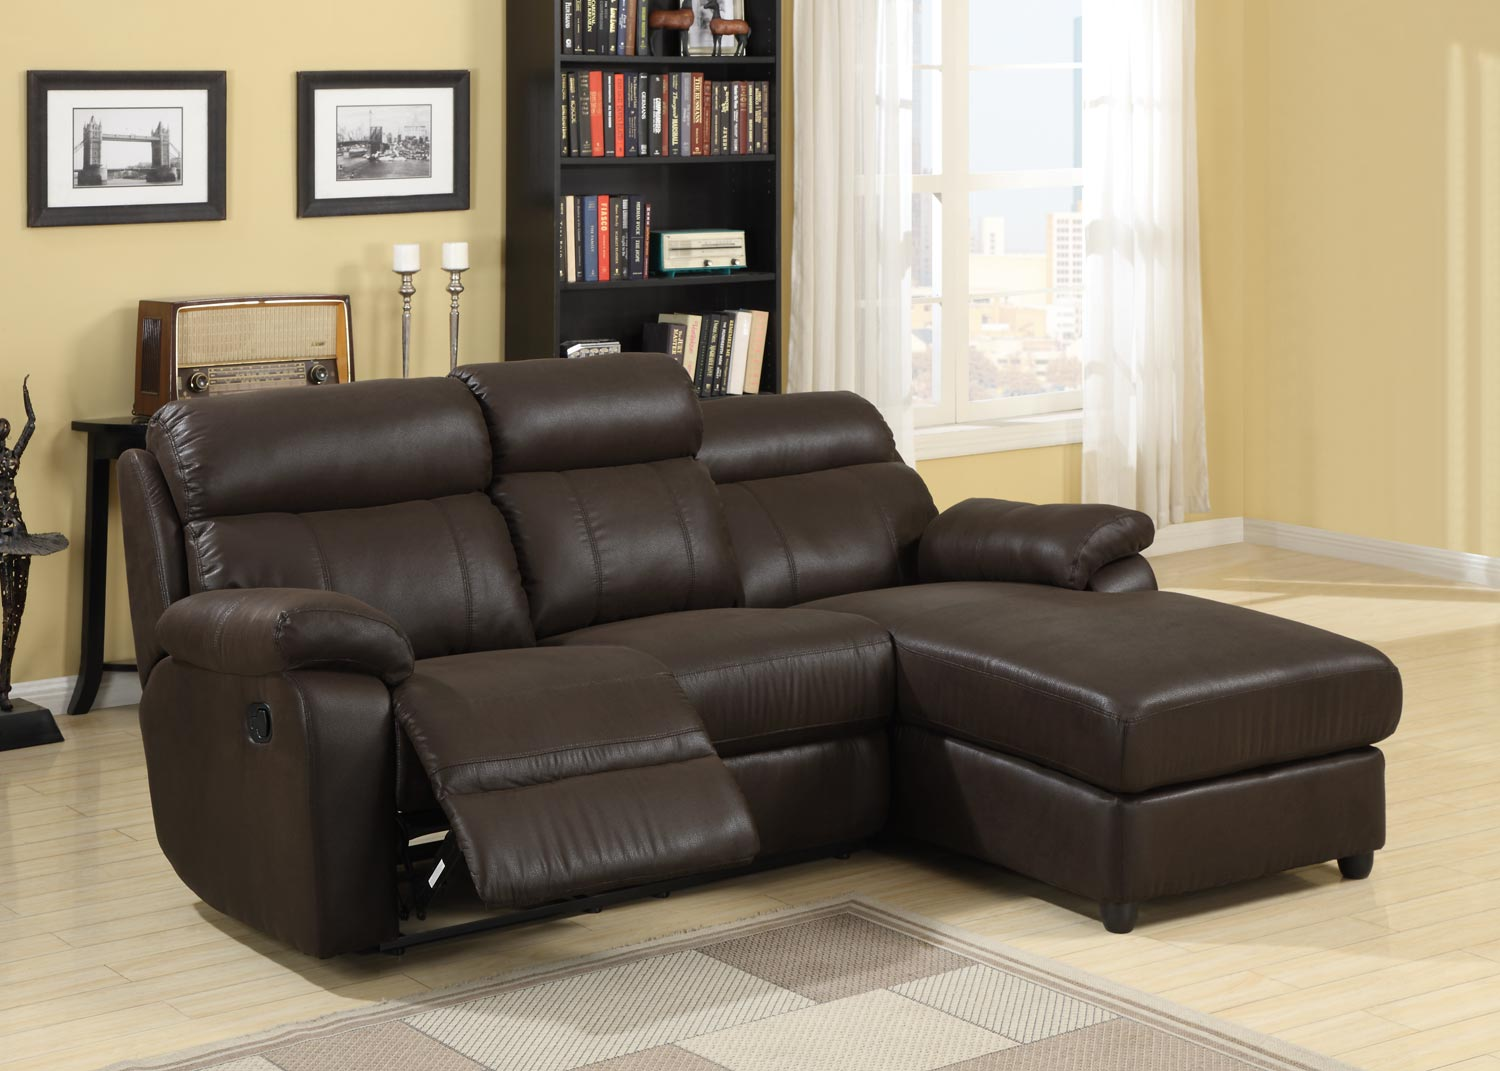 Homelegance gaines sectional sofa brown bomber jacket for Brown microfiber sectional with chaise